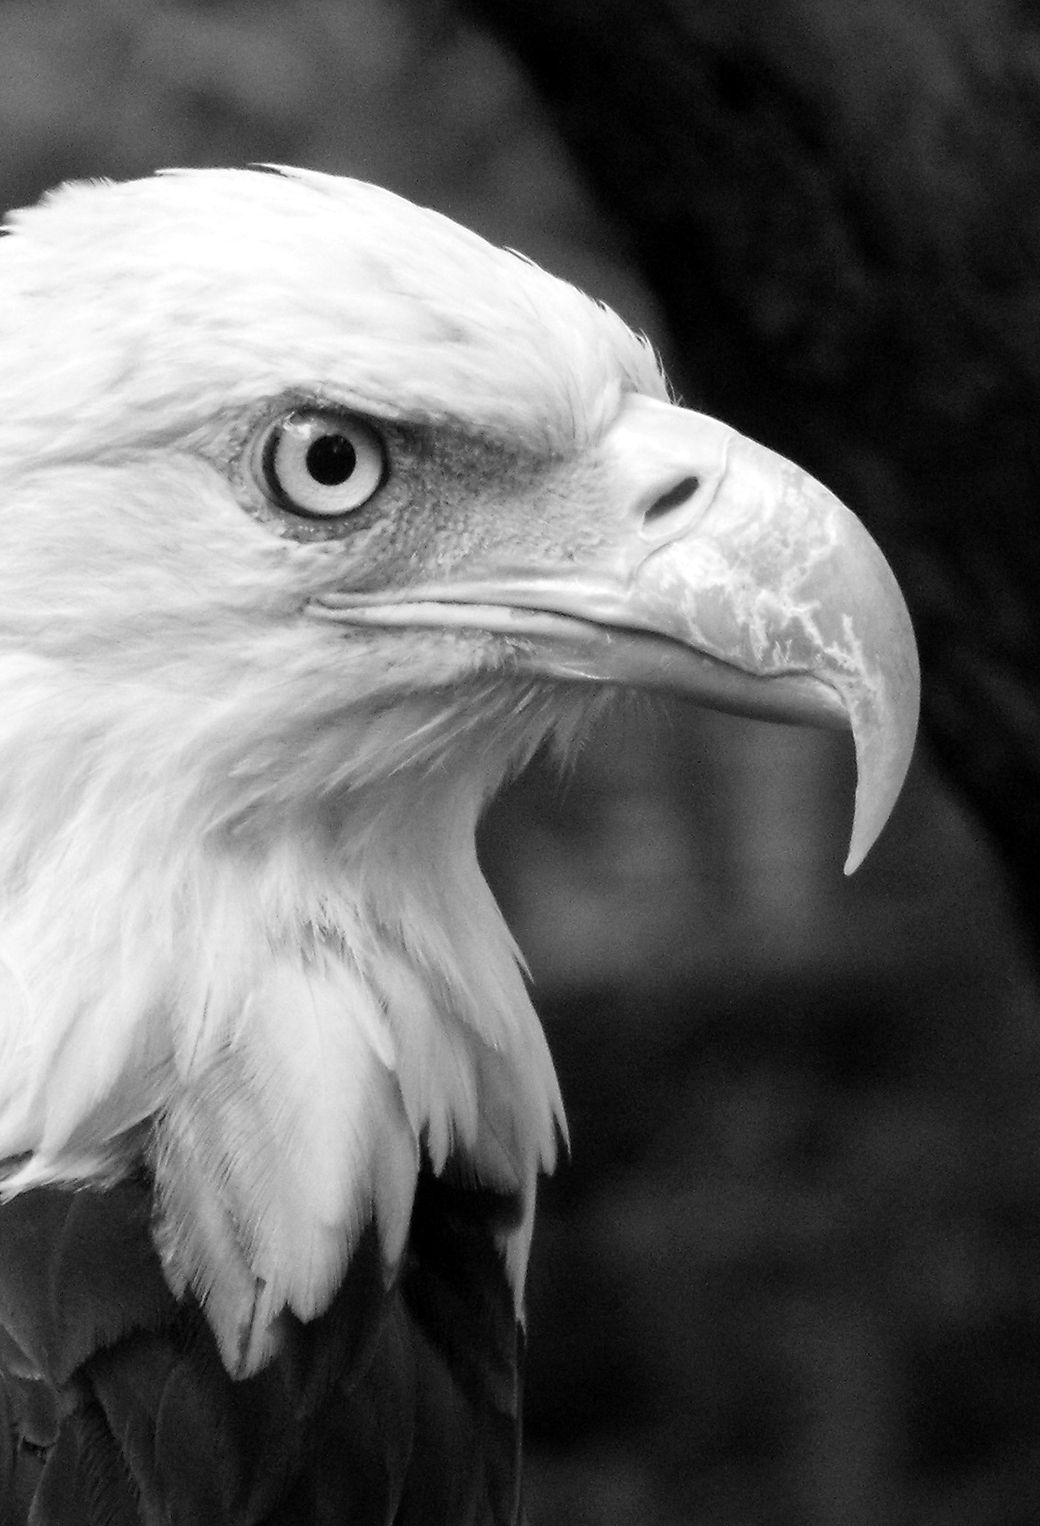 Eagle Wallpaper Iphone X Black Amp White Eagle Wallpaper For Iphone X 8 7 6 Free